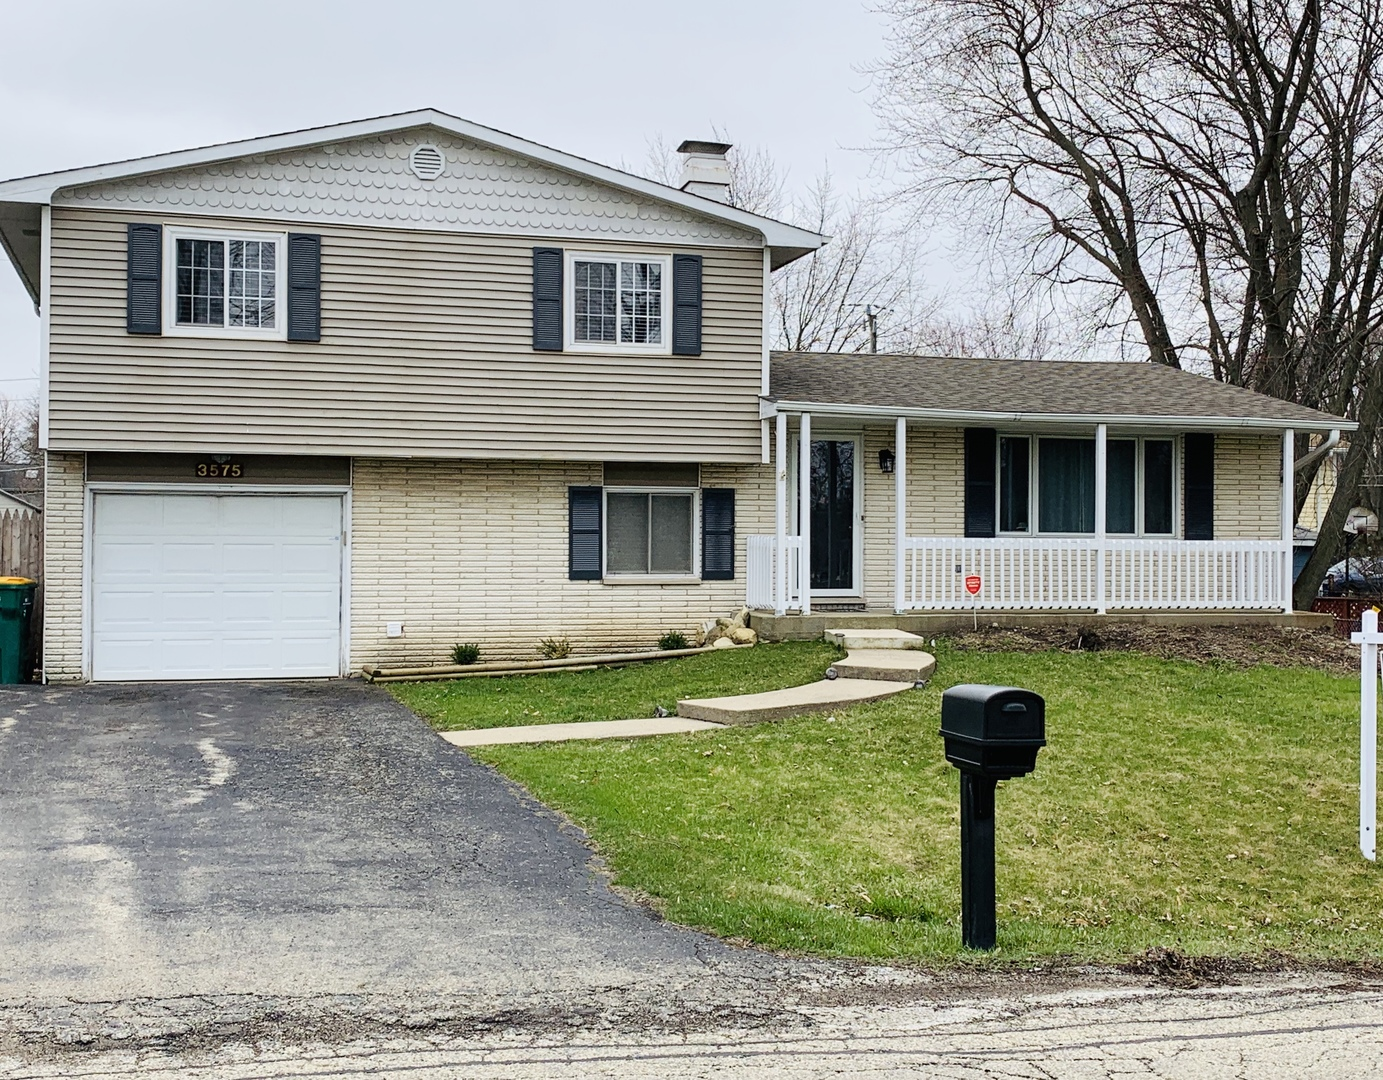 Gurnee Homes for Sale -  Price Reduced,  3575 Woodlawn Avenue